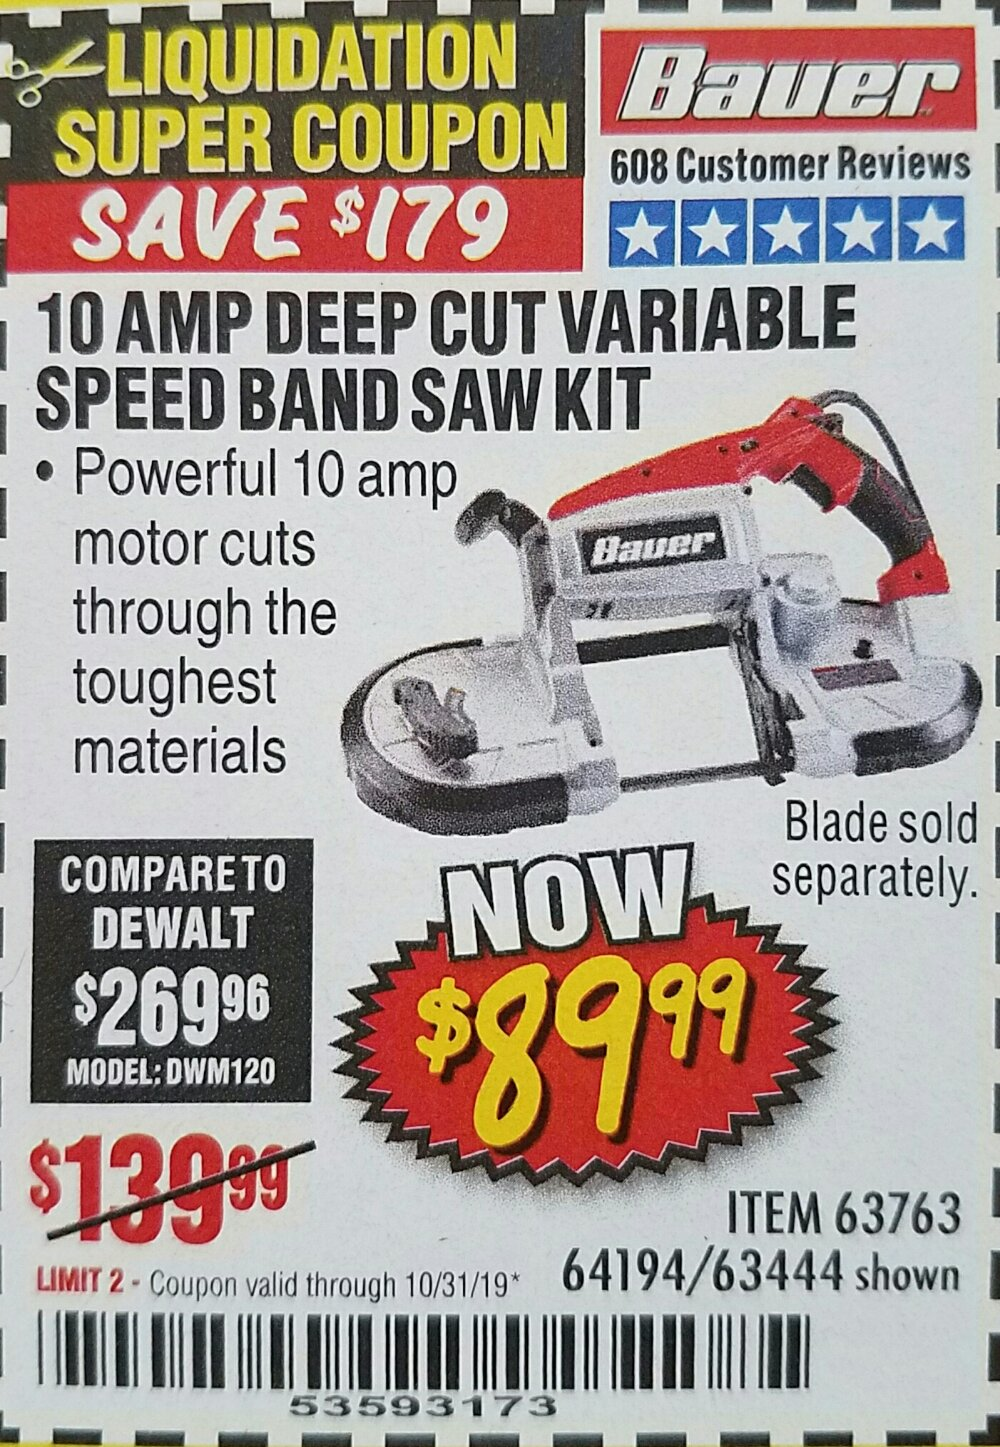 Harbor Freight Coupon, HF Coupons - 10 Amp Deep Cut Variable Speed Band Saw Kit